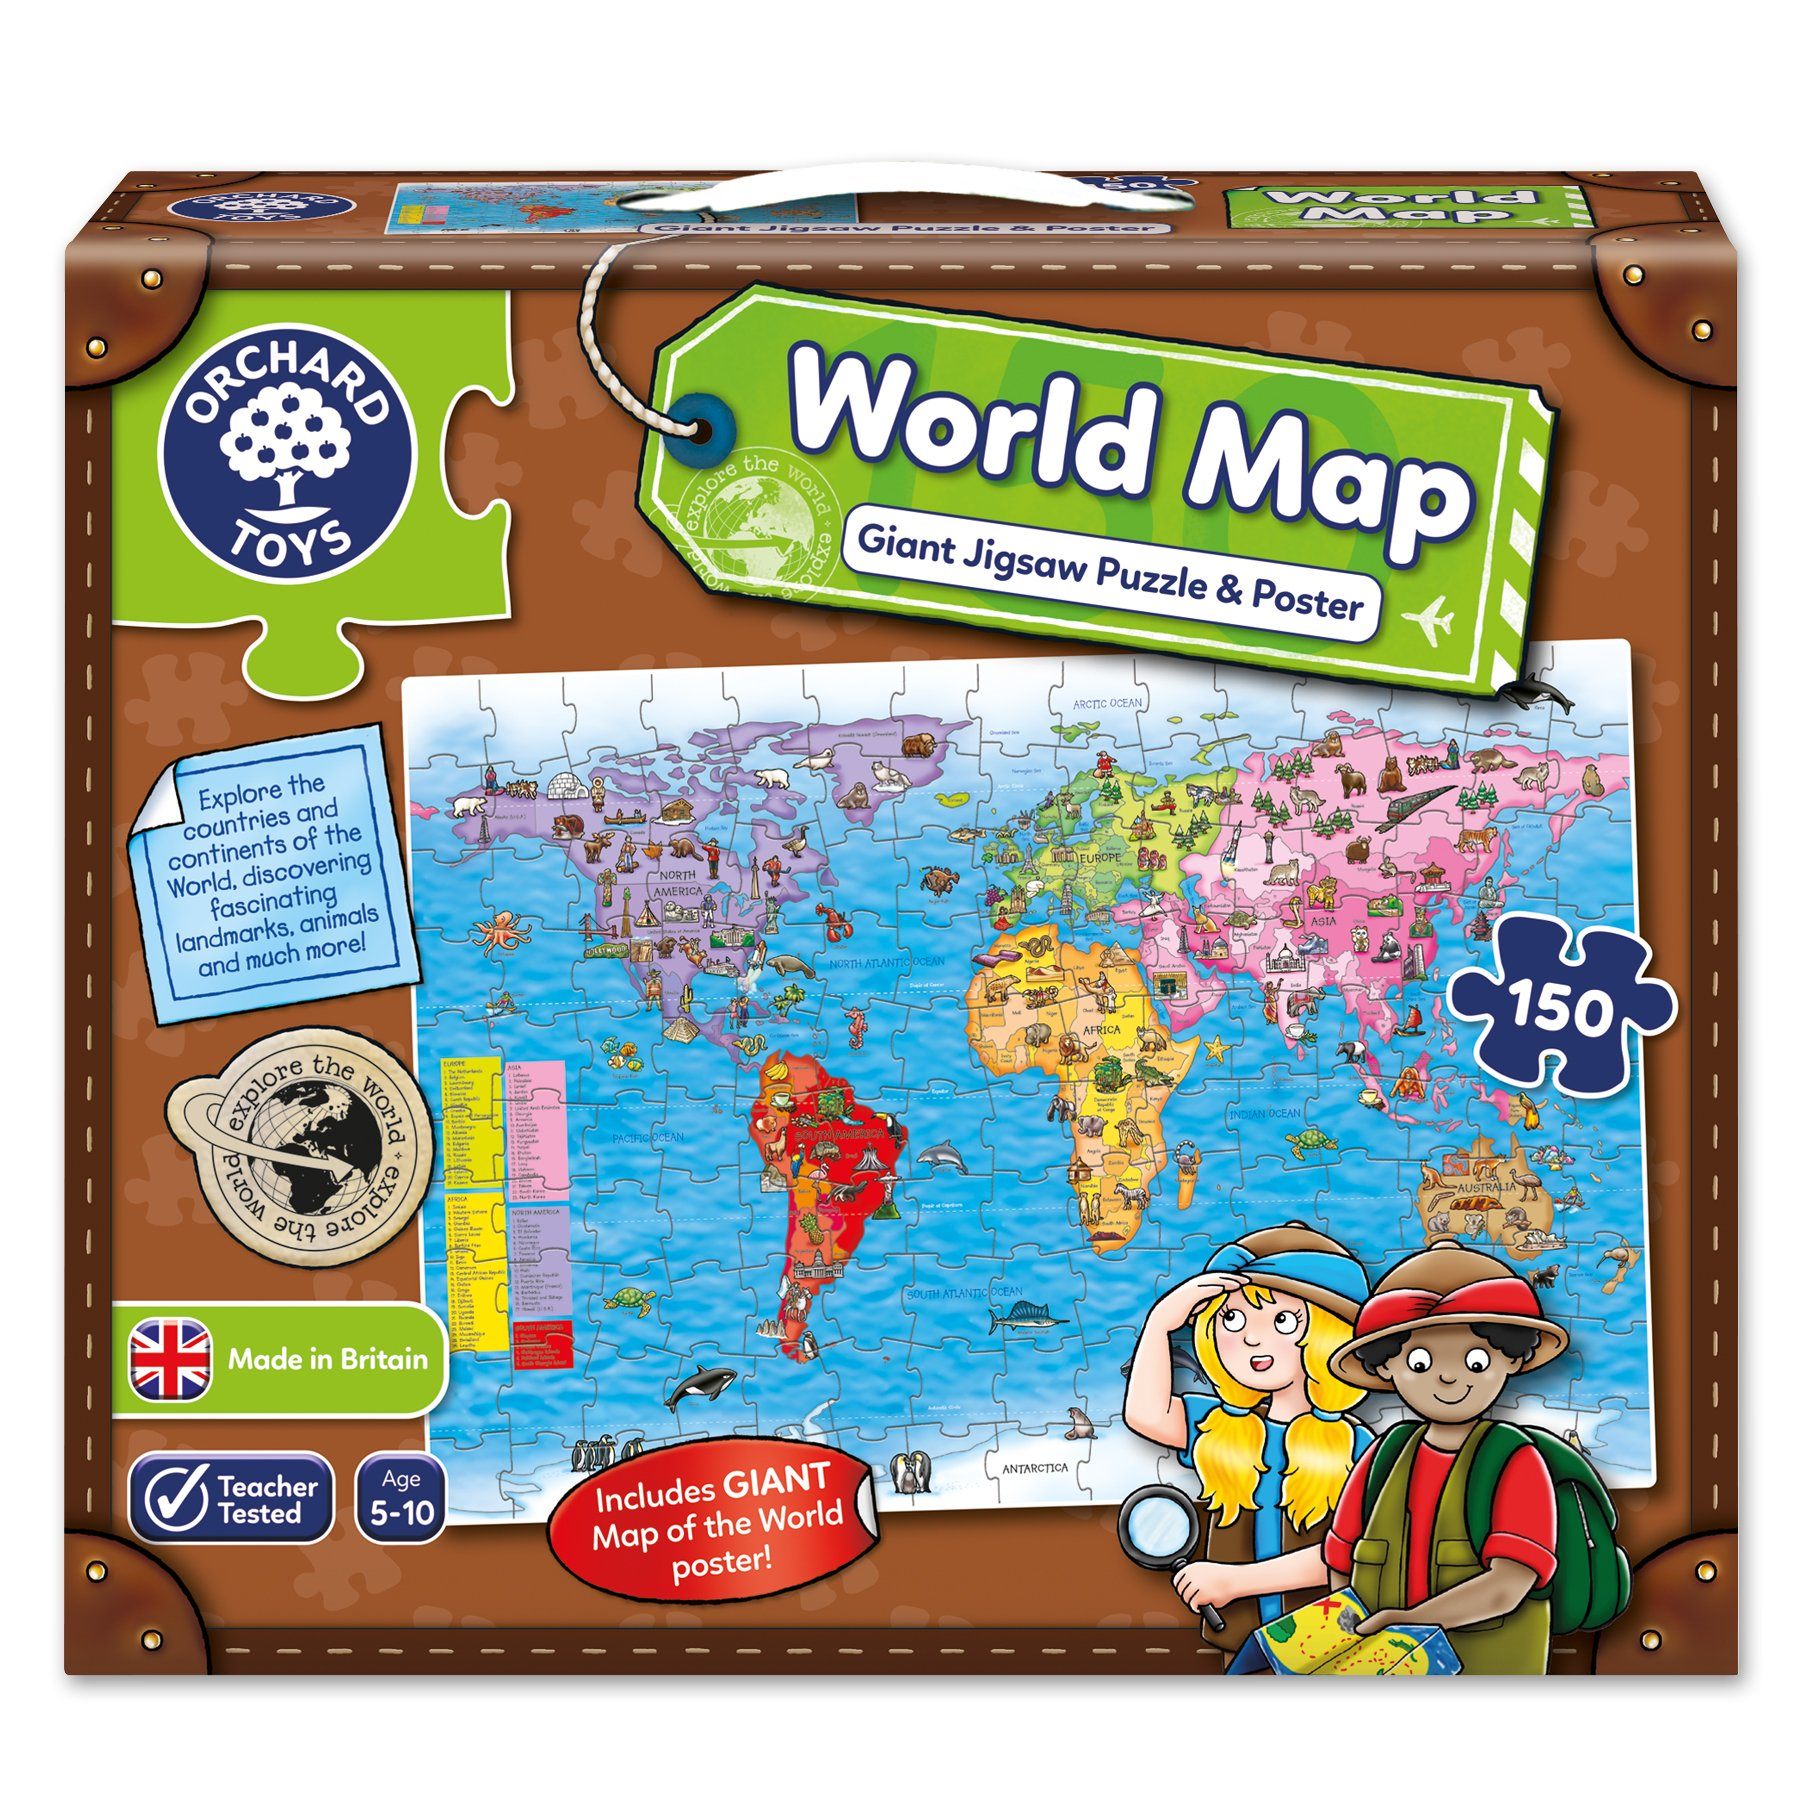 Orchard toys world map jigsaw puzzle and poster ebay orchard toys world map jigsaw puzzle and poster gumiabroncs Image collections